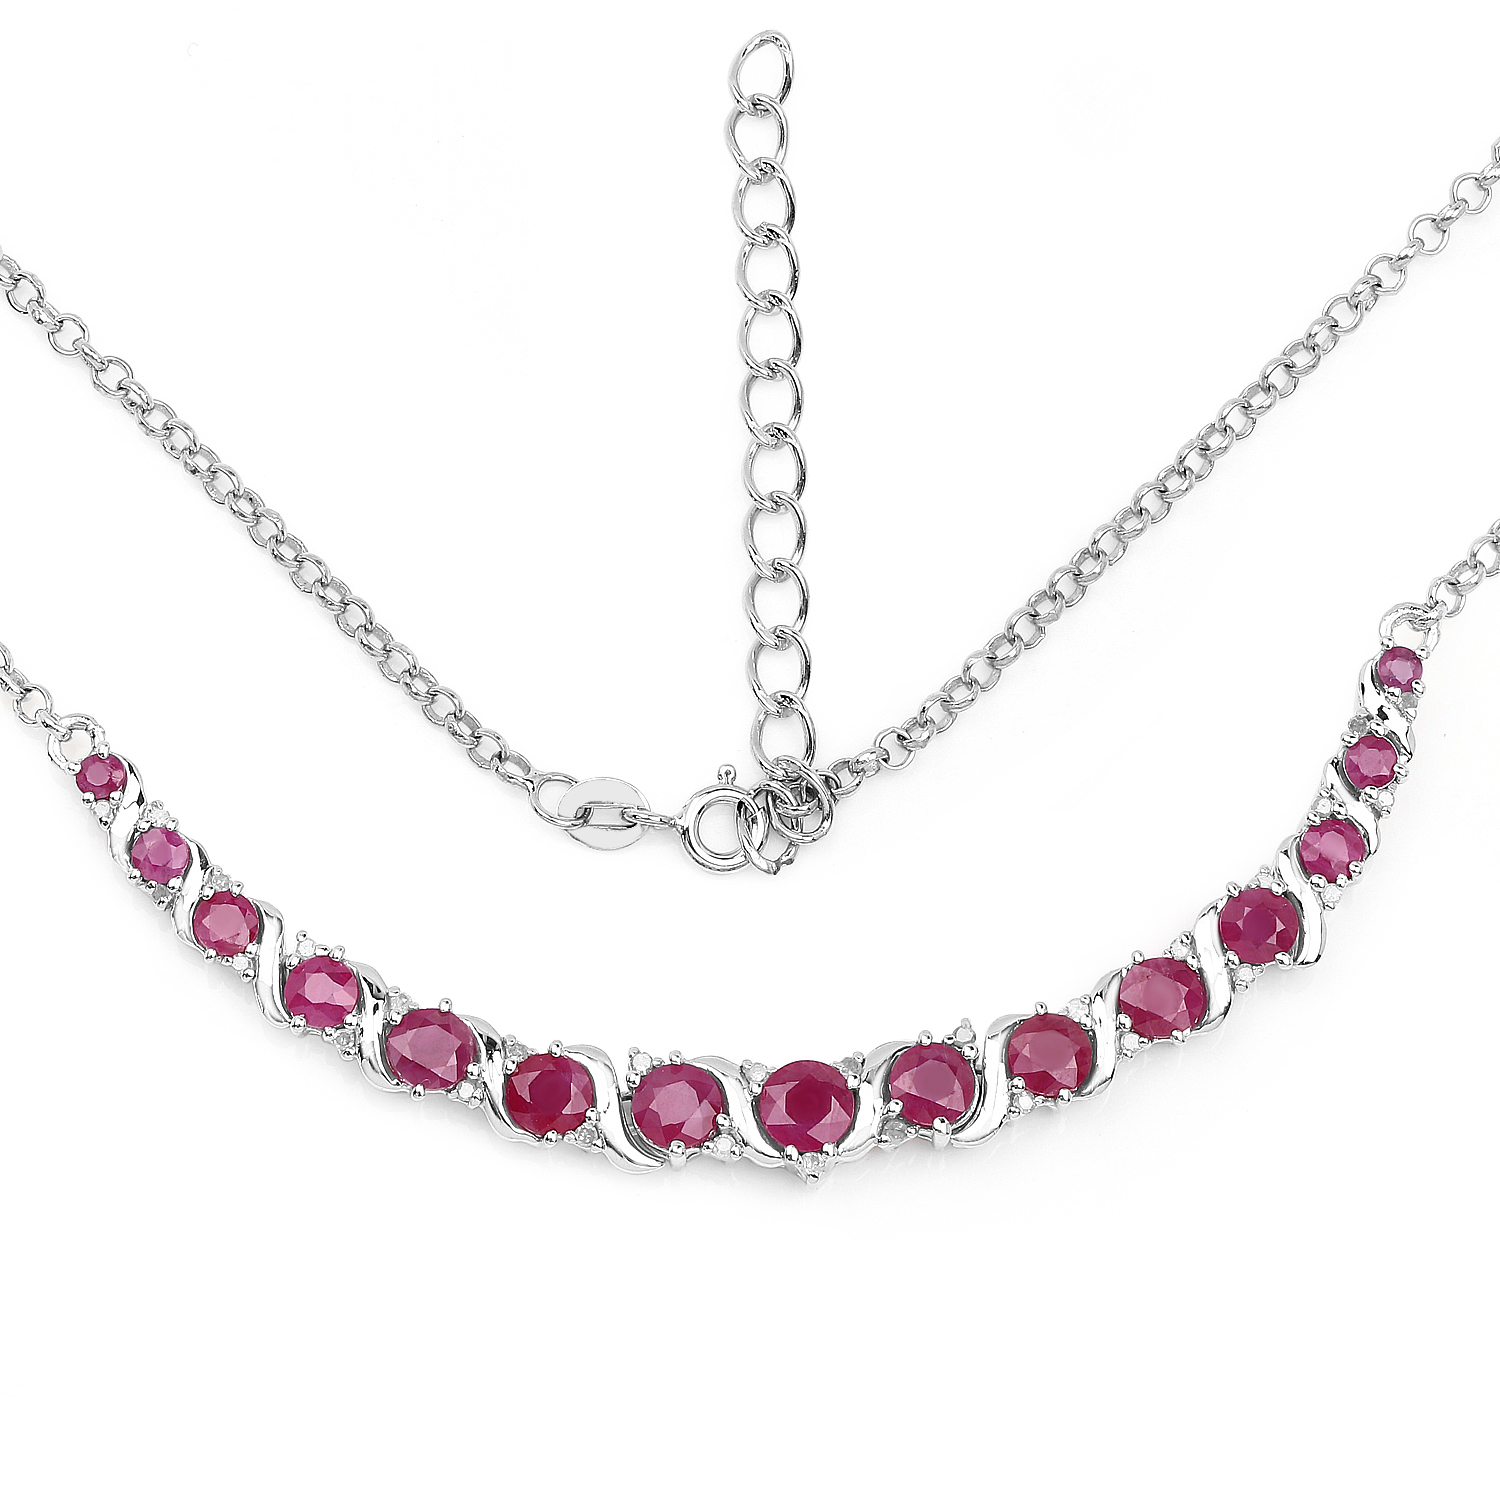 Genuine Round Ruby Necklace in Sterling Silver by Bonyak Jewelry